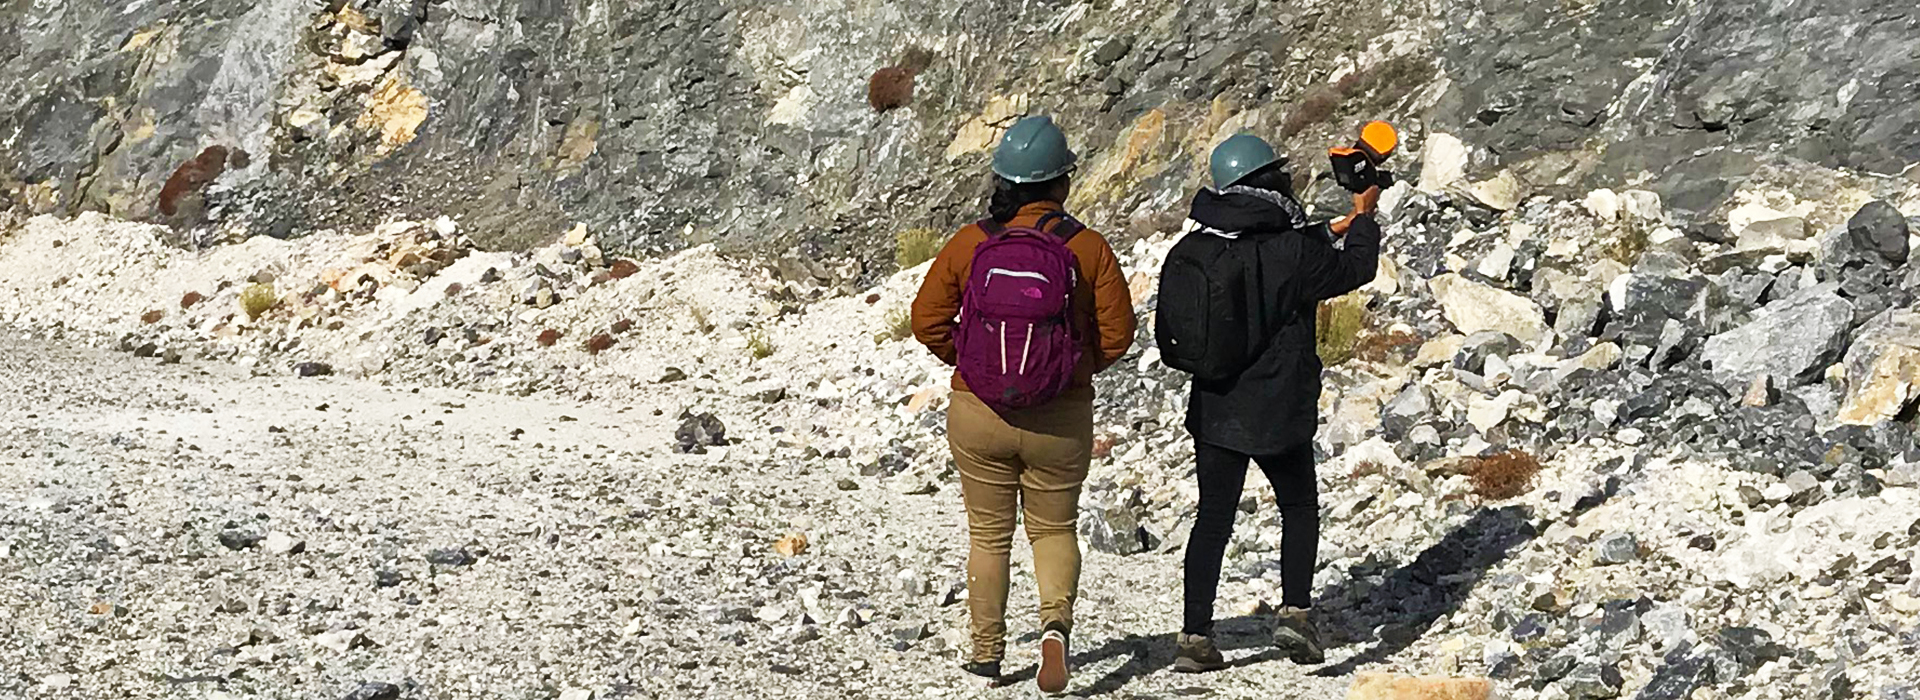 CSUSB Geological Sciences receives grant to enrich student learning with digital mapping technology